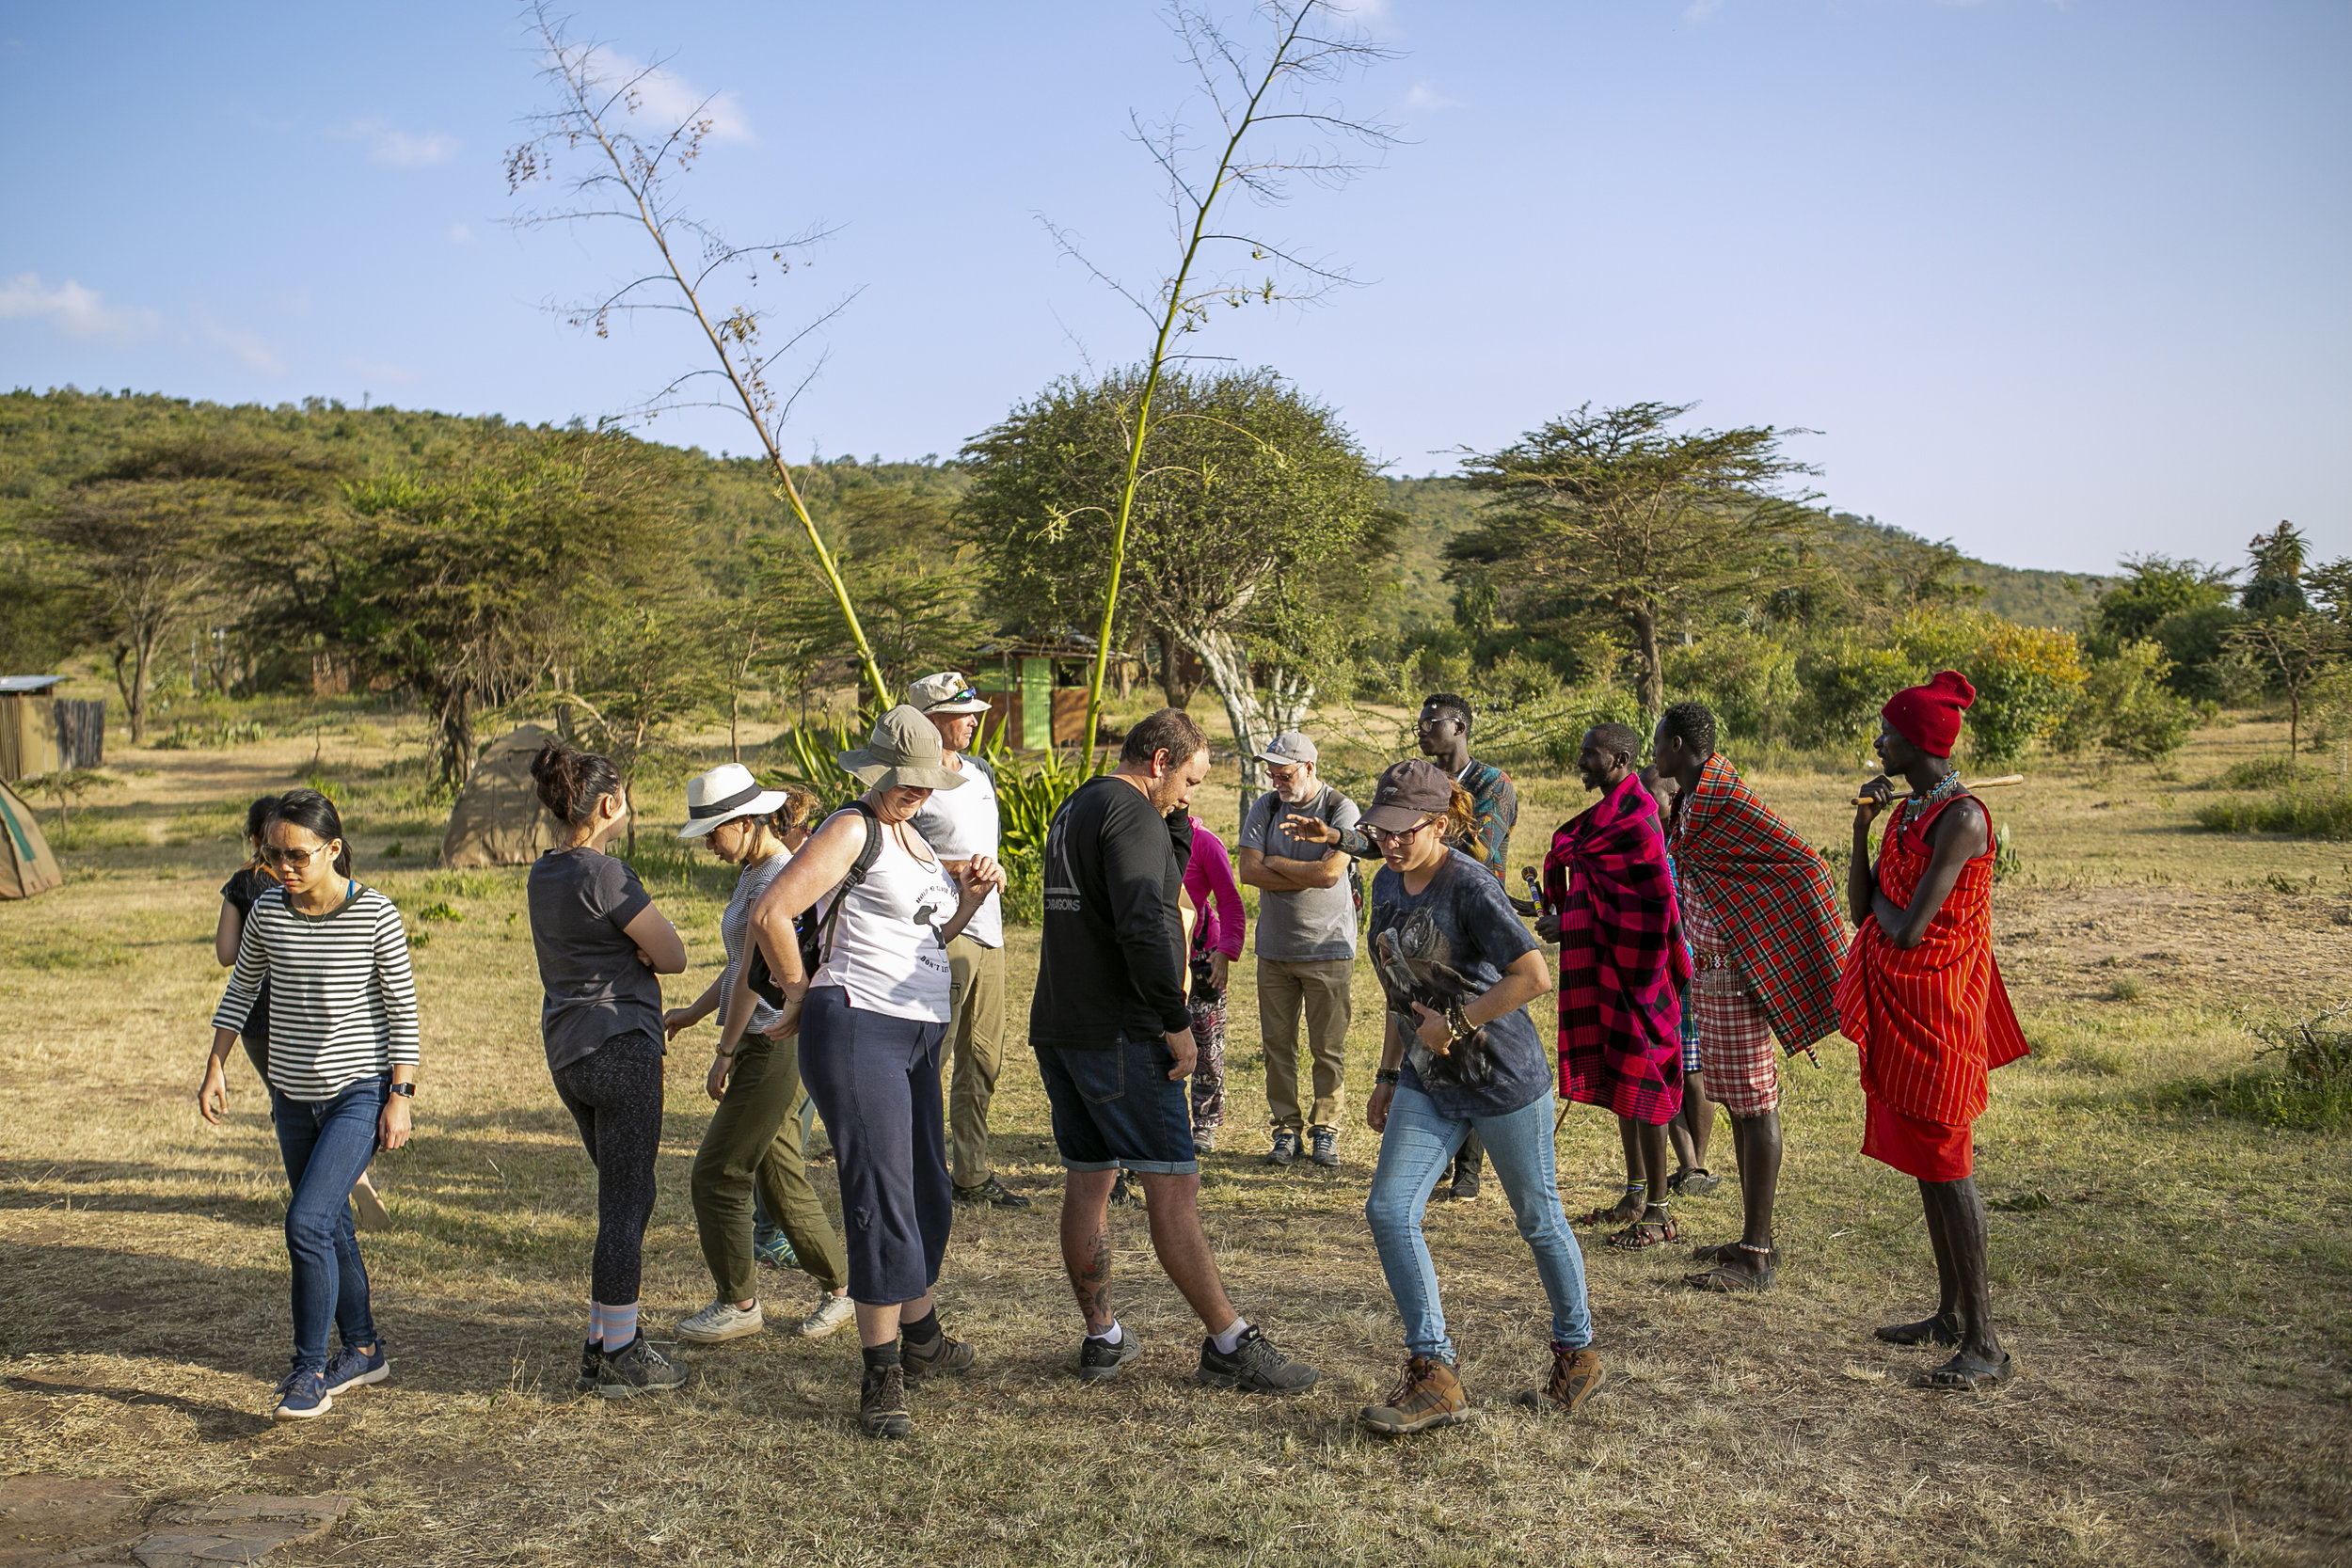 African Adventure - 22 July '18 - Lake Naivasha camp to the Loita Hills Maasai Village - 008.JPG